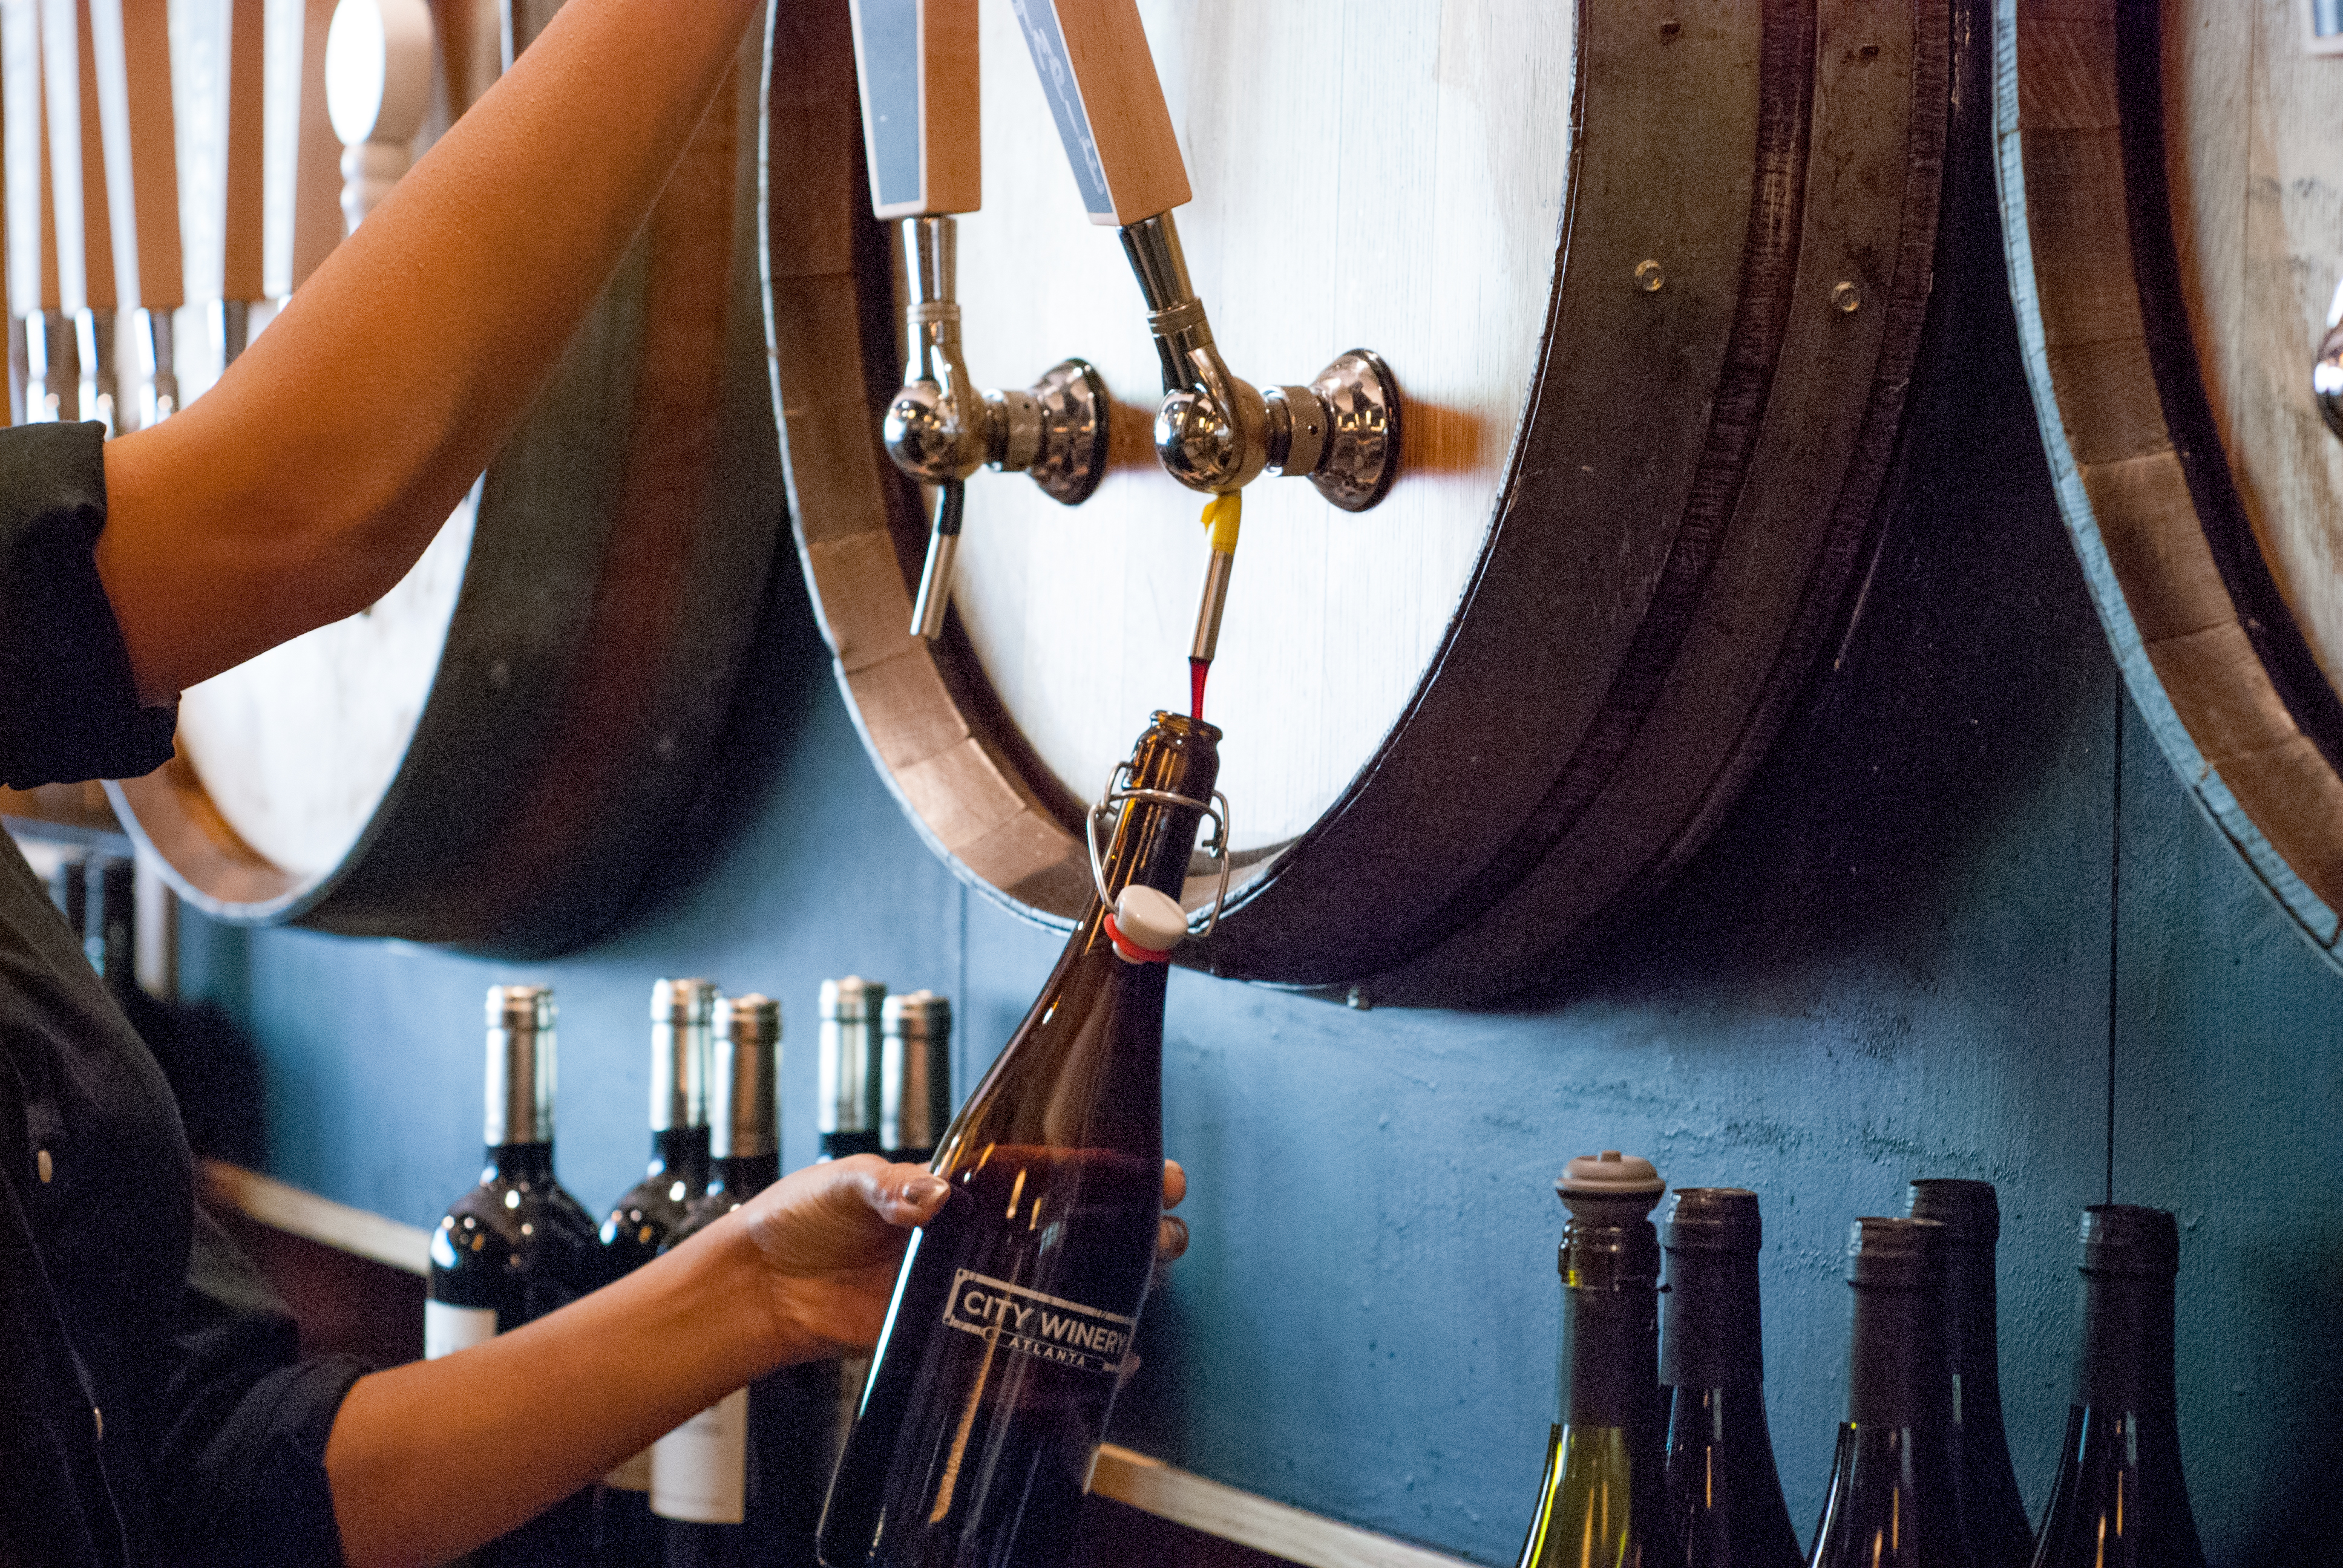 A wine growler being filled at City Winery